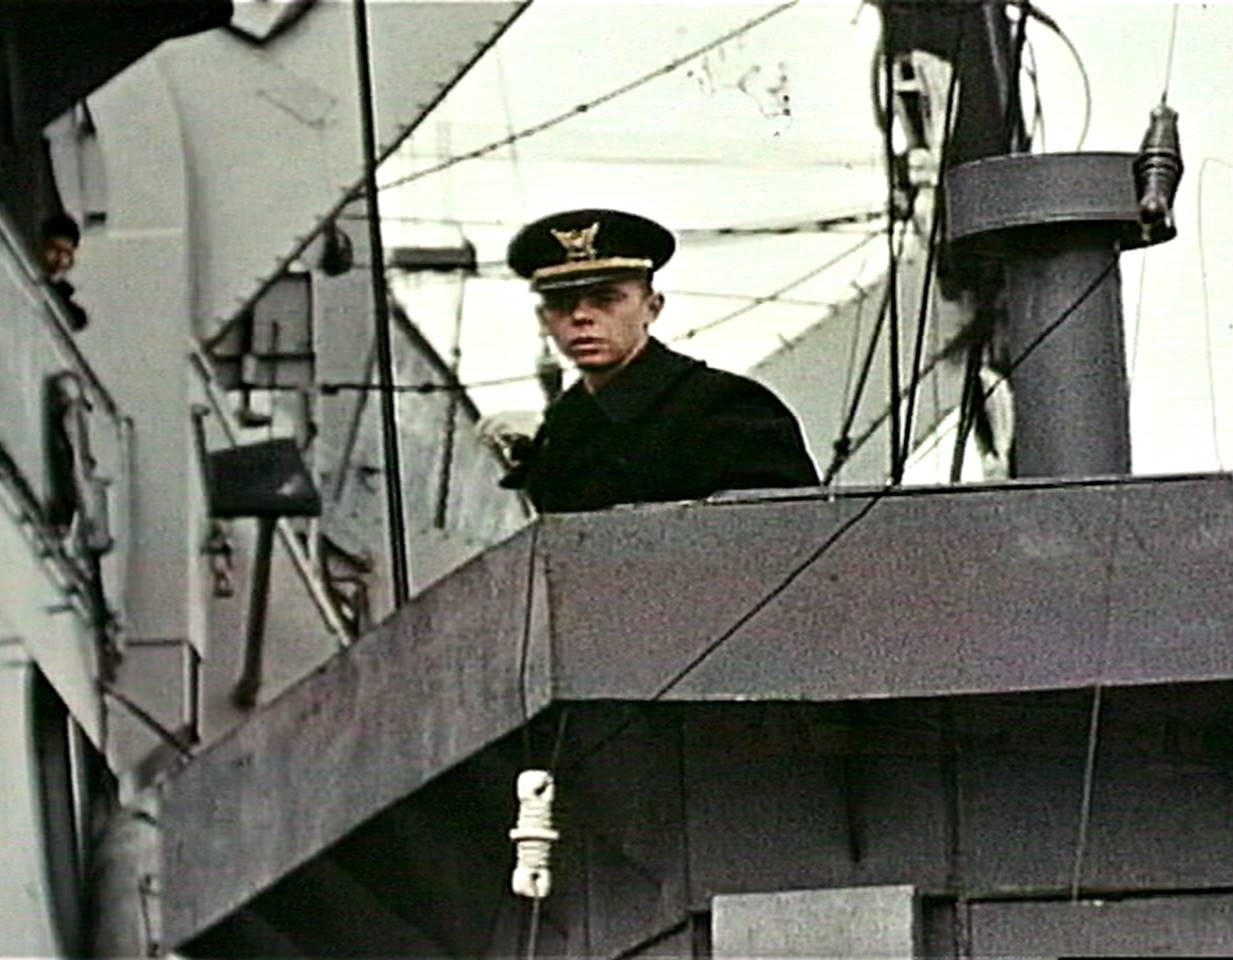 Fig. 5: Lt. Gene R. Gislason, captain of LCI(L)-94, frame from USCG film by David Ruley